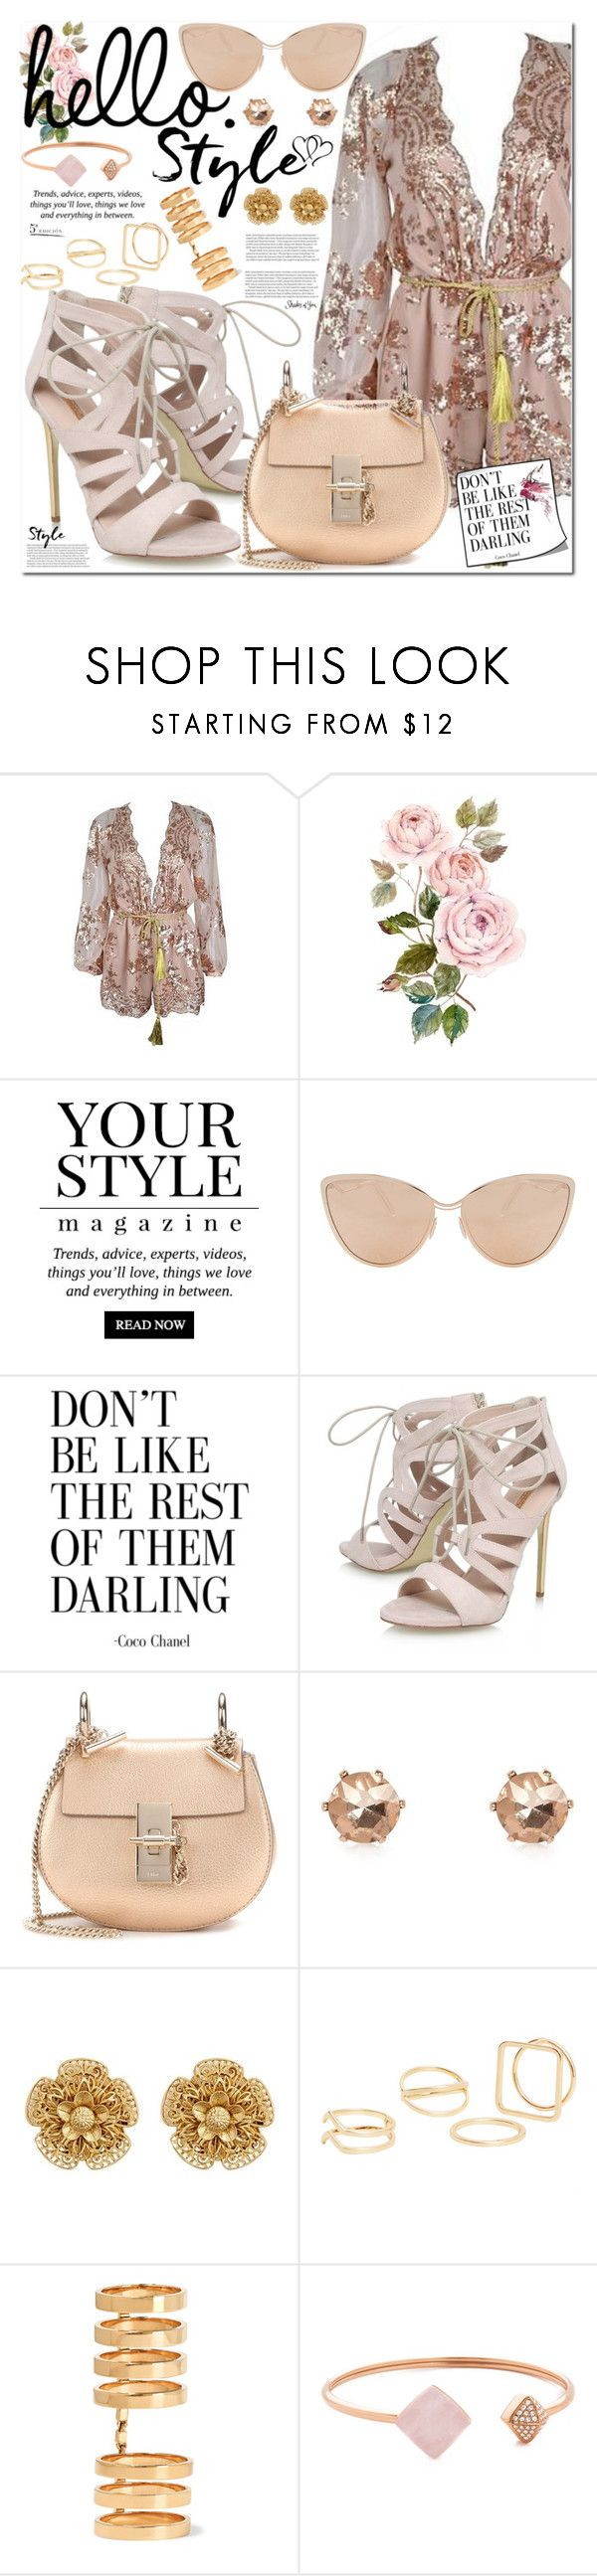 """""""metallic playsuit"""" by misskouture ❤ liked on Polyvore featuring Pussycat, Cutler and Gross, Carvela, Chloé, River Island, Miriam Haskell, MANGO, Repossi, Michael Kors and rosegold"""